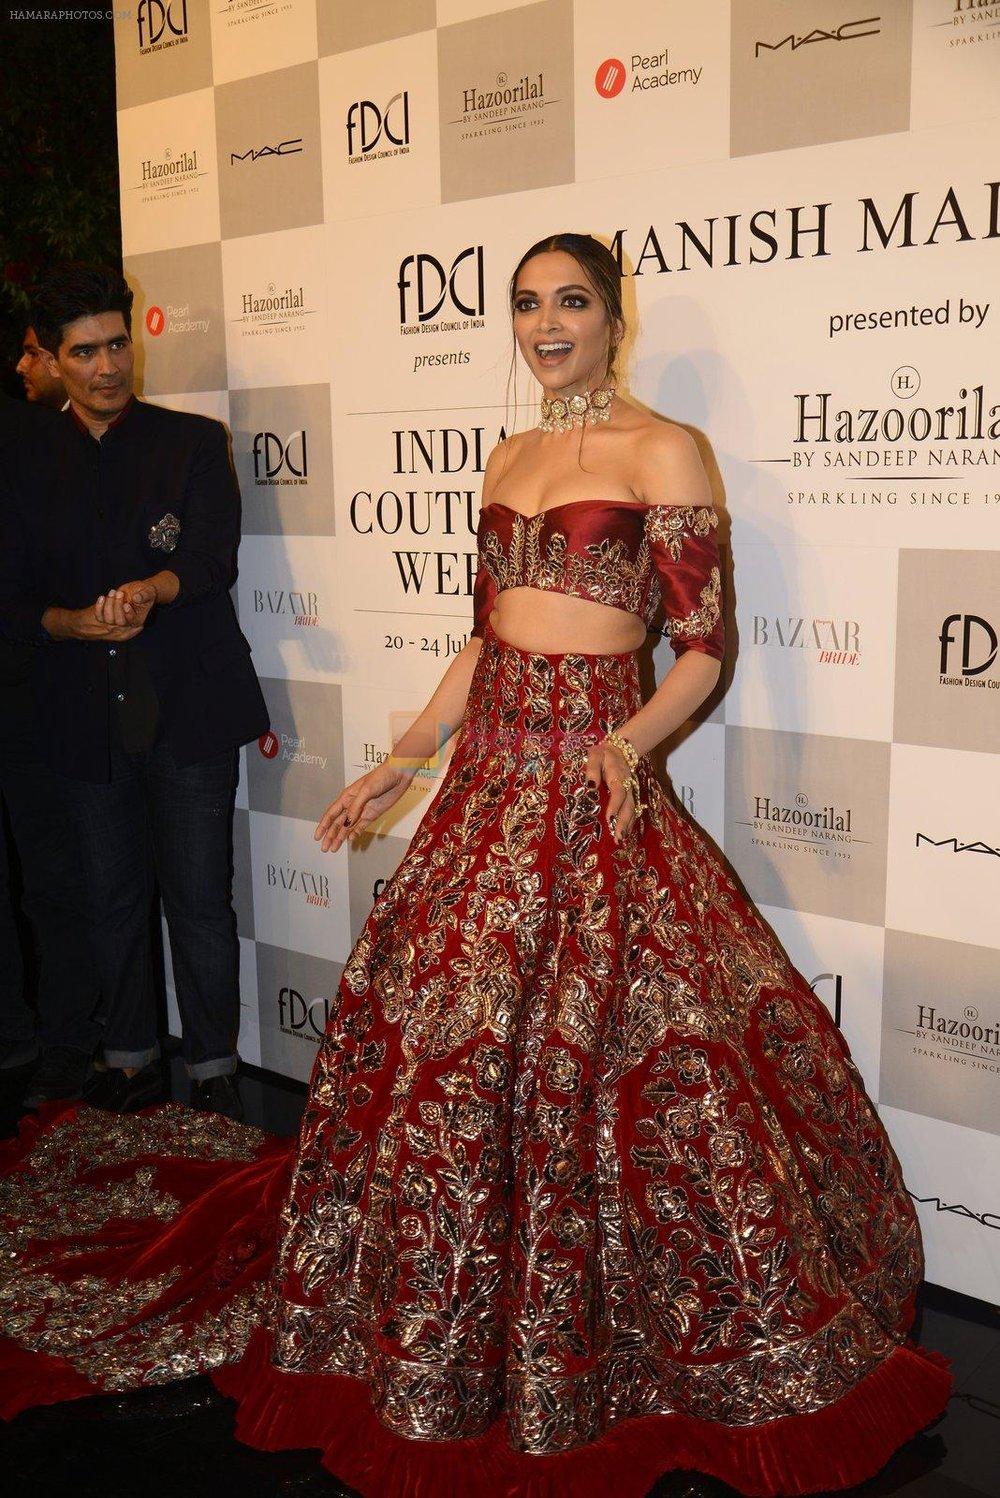 Deepika-Padukone-during-the-FDCI-India-Couture-Week-2016-at-the-Taj-Palace-on-July-21-2016-4.jpg